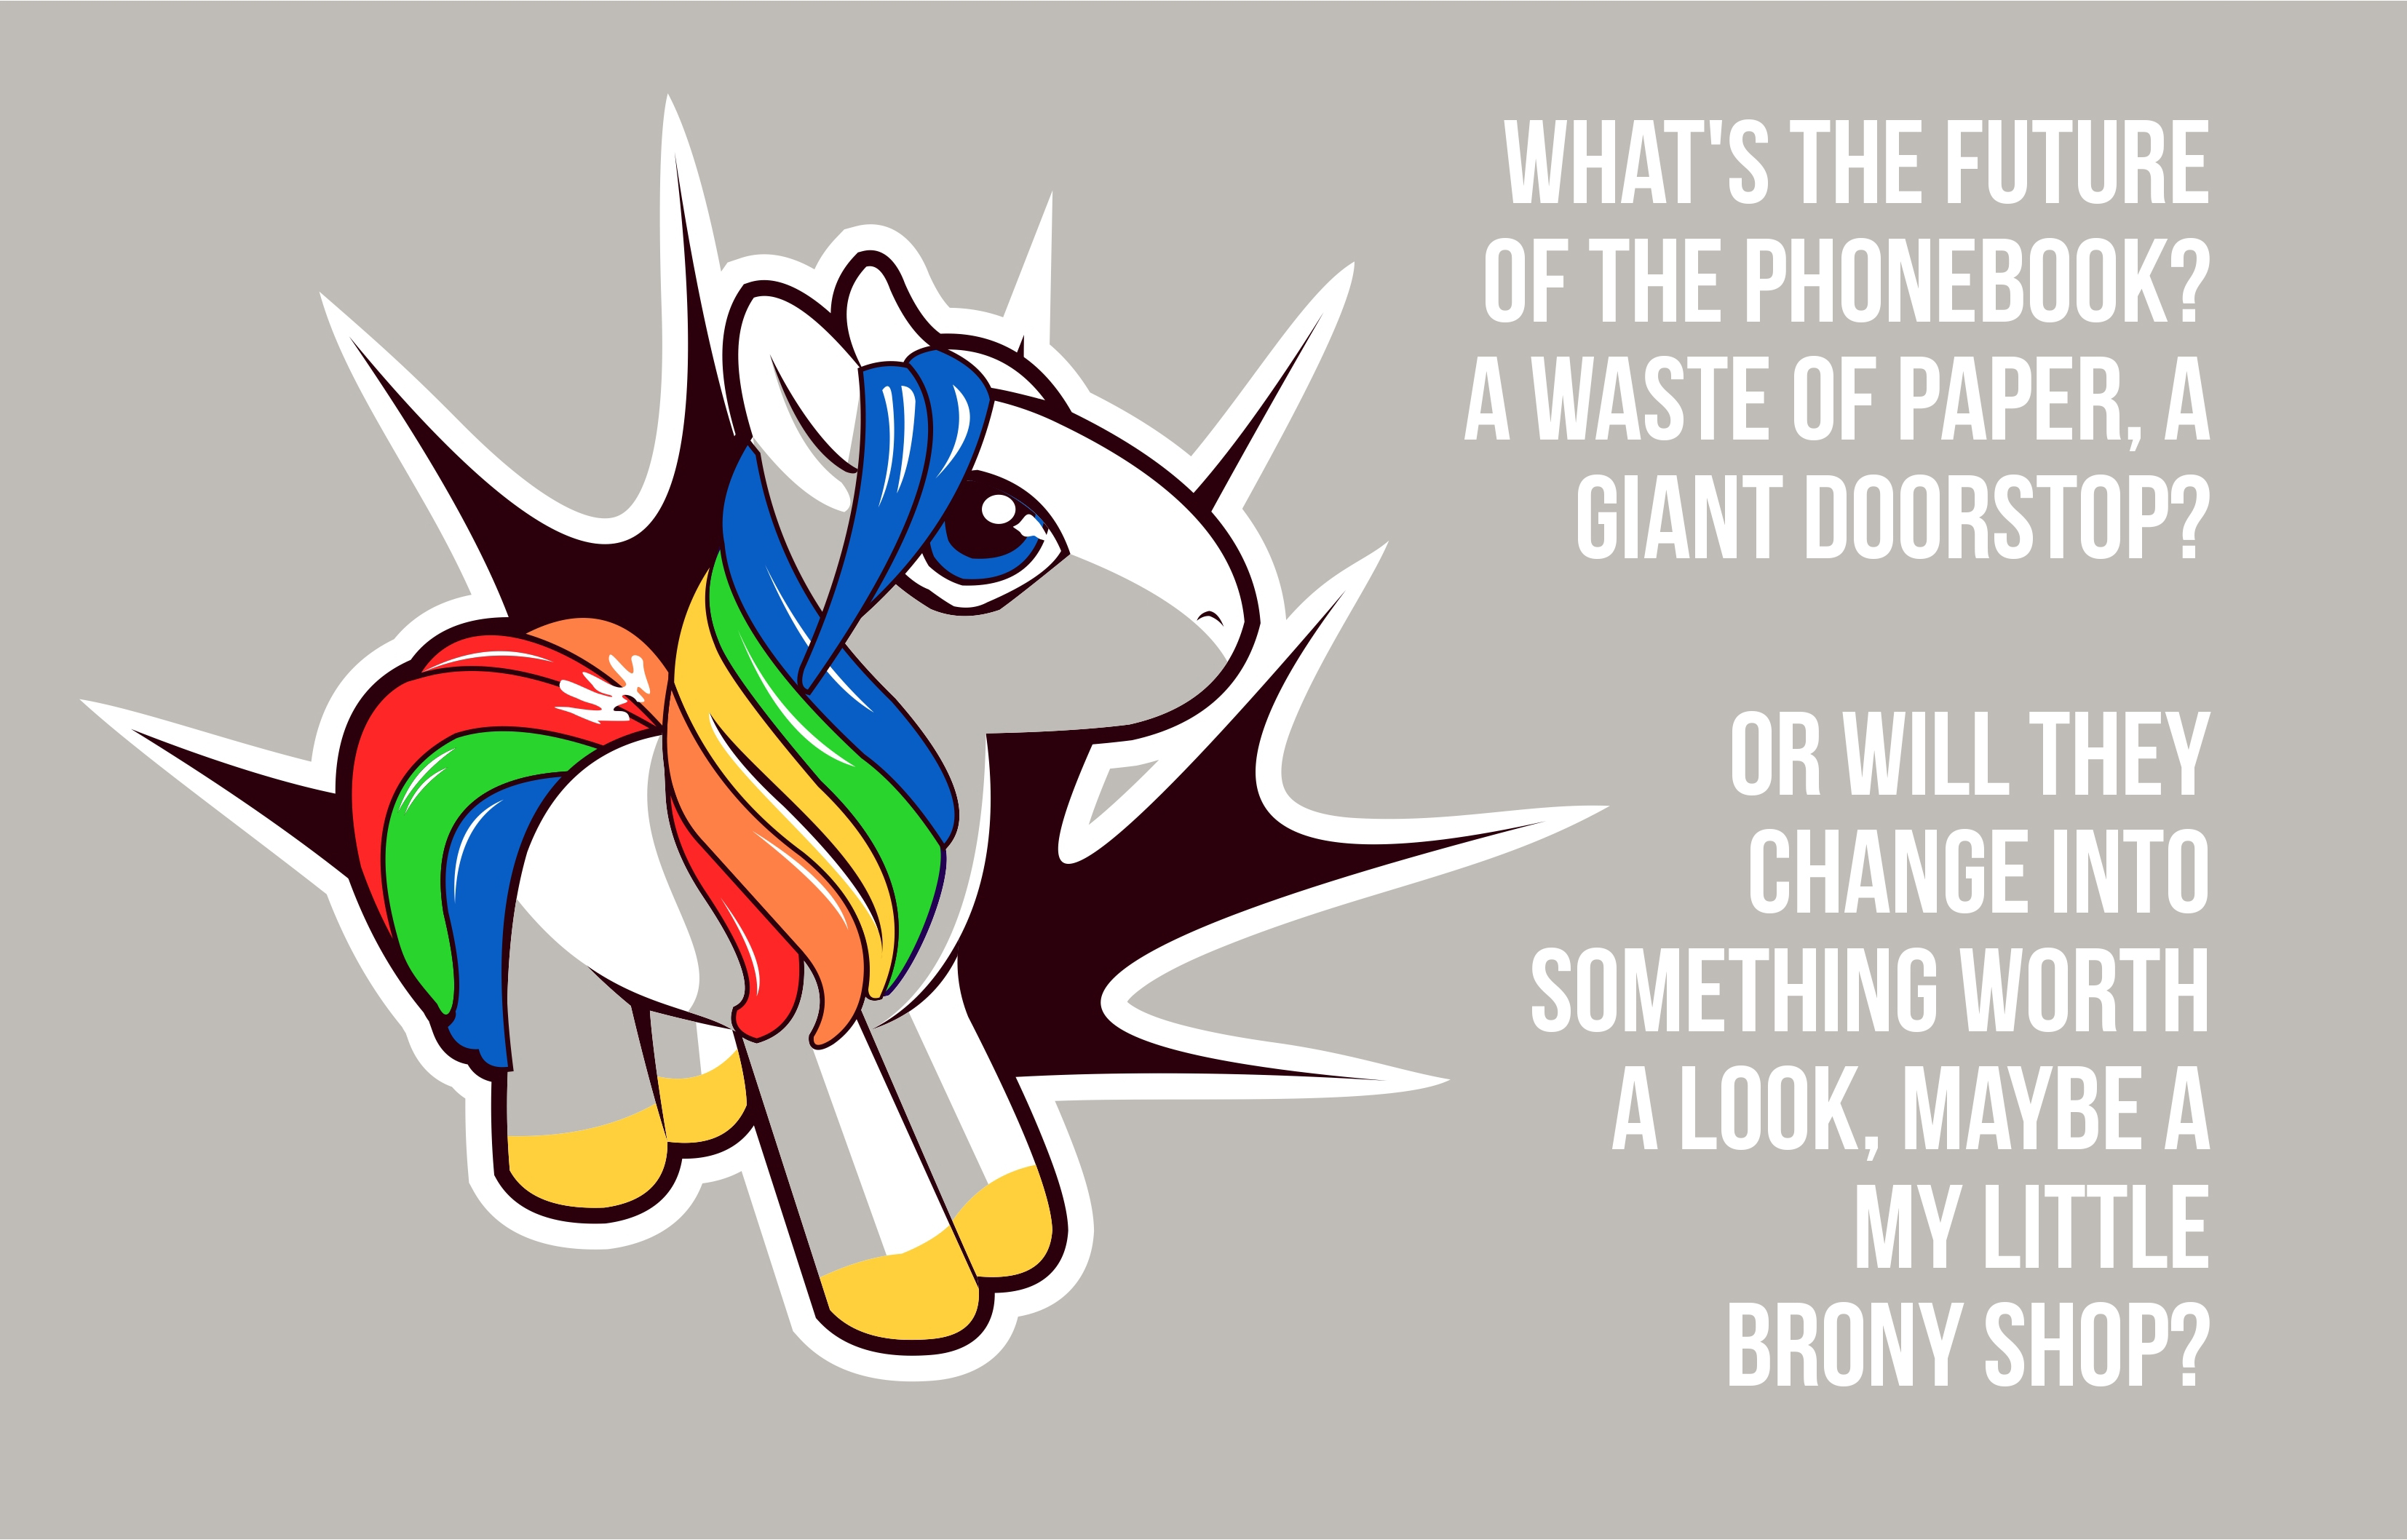 Or will they change into something worth a look, maybe a My Little Brony shop